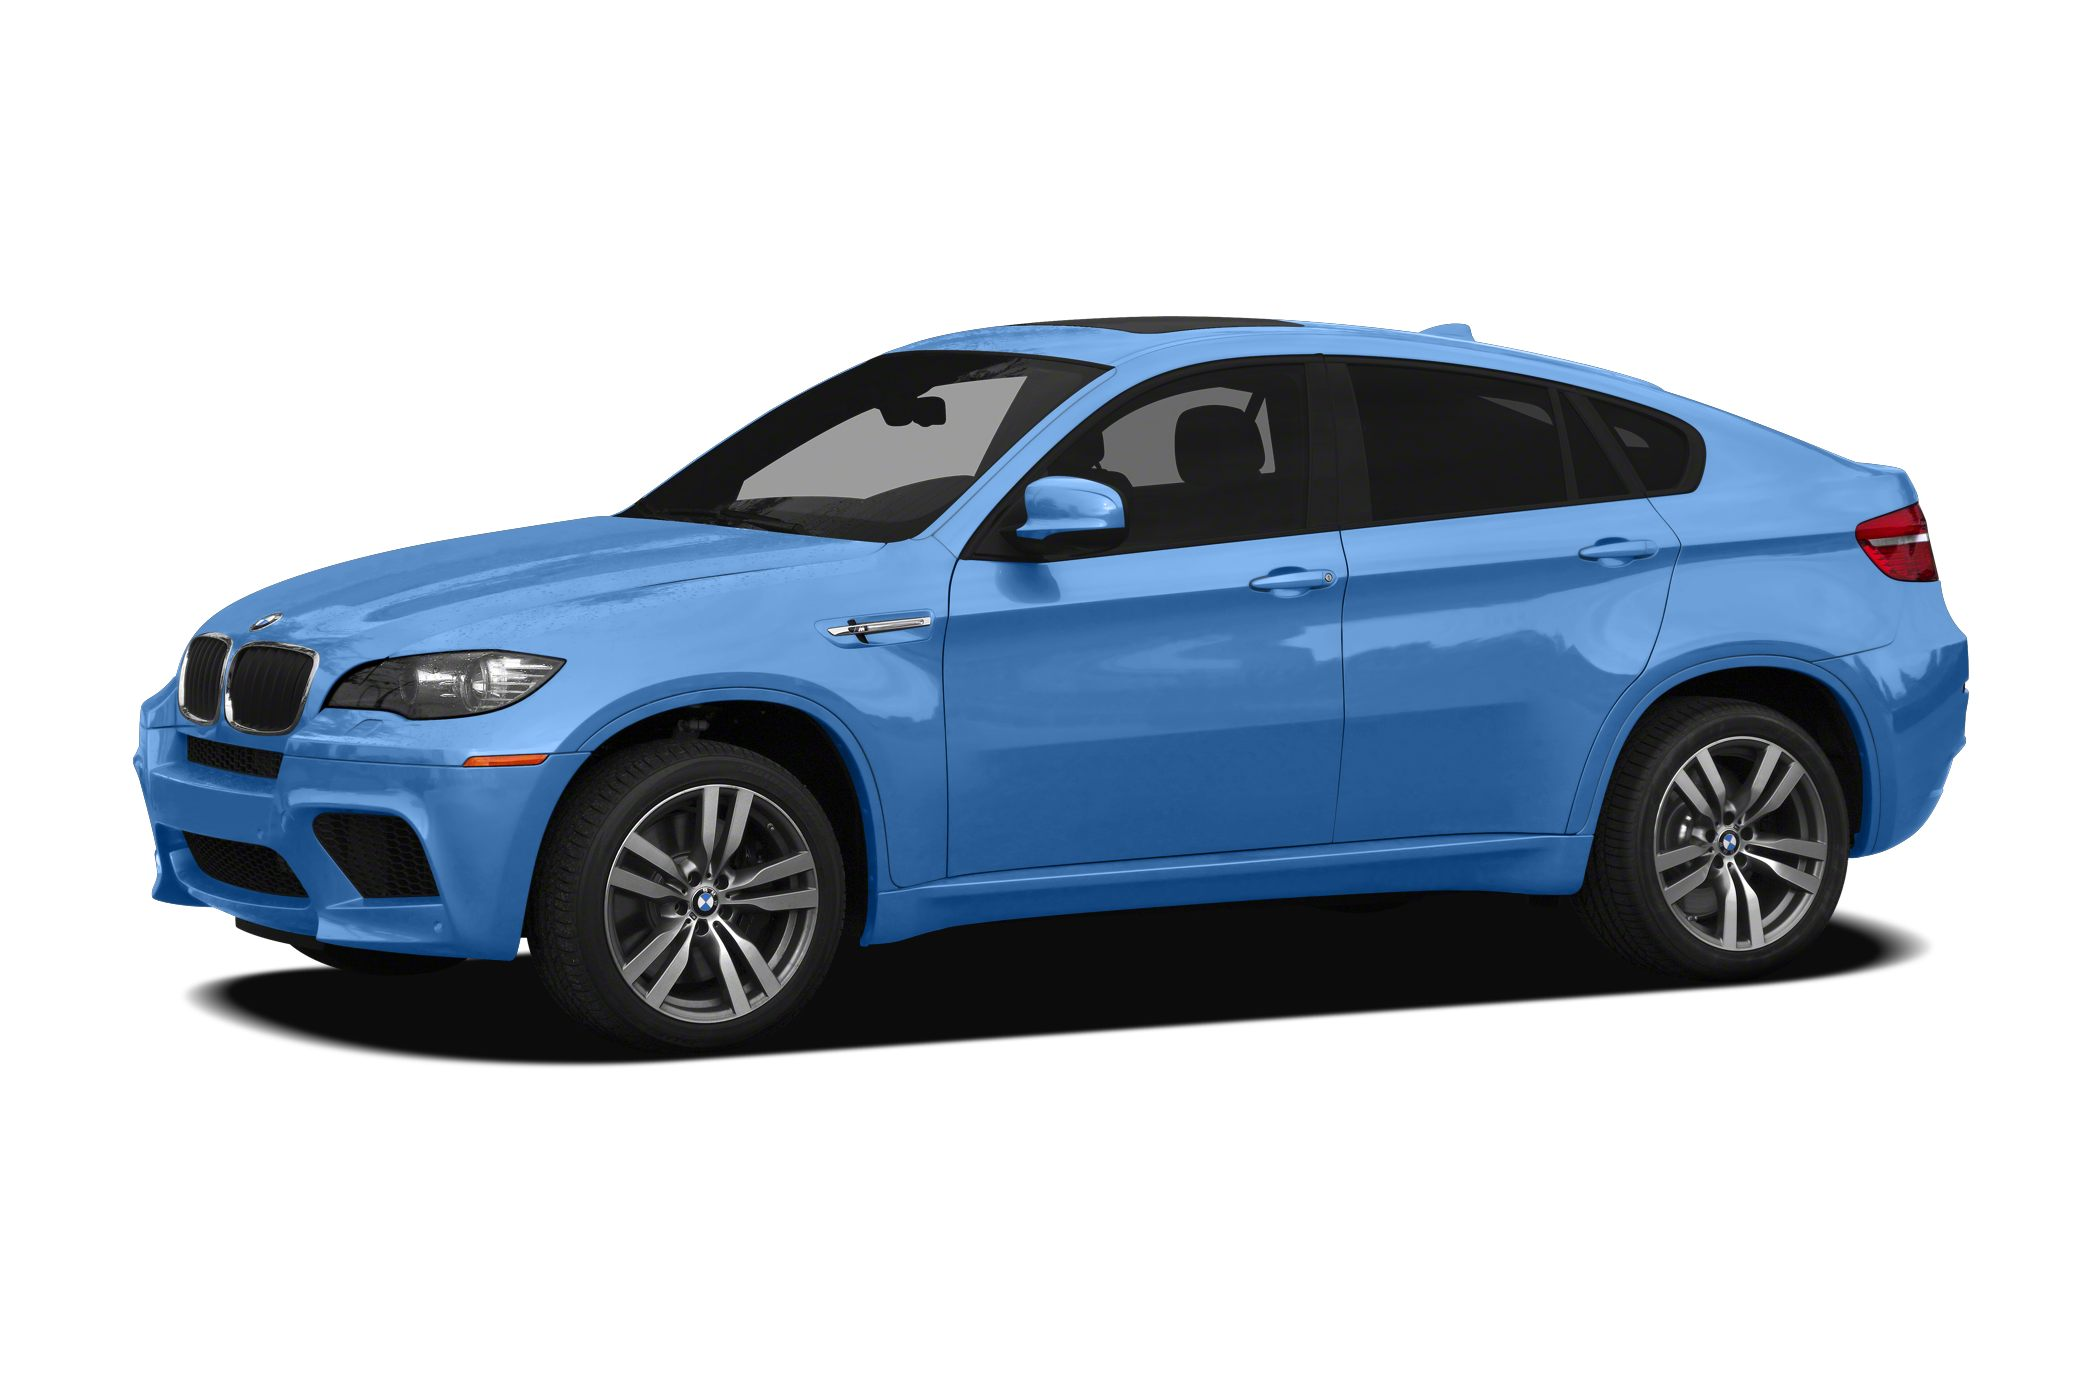 2011 BMW X6 M Specs and Prices